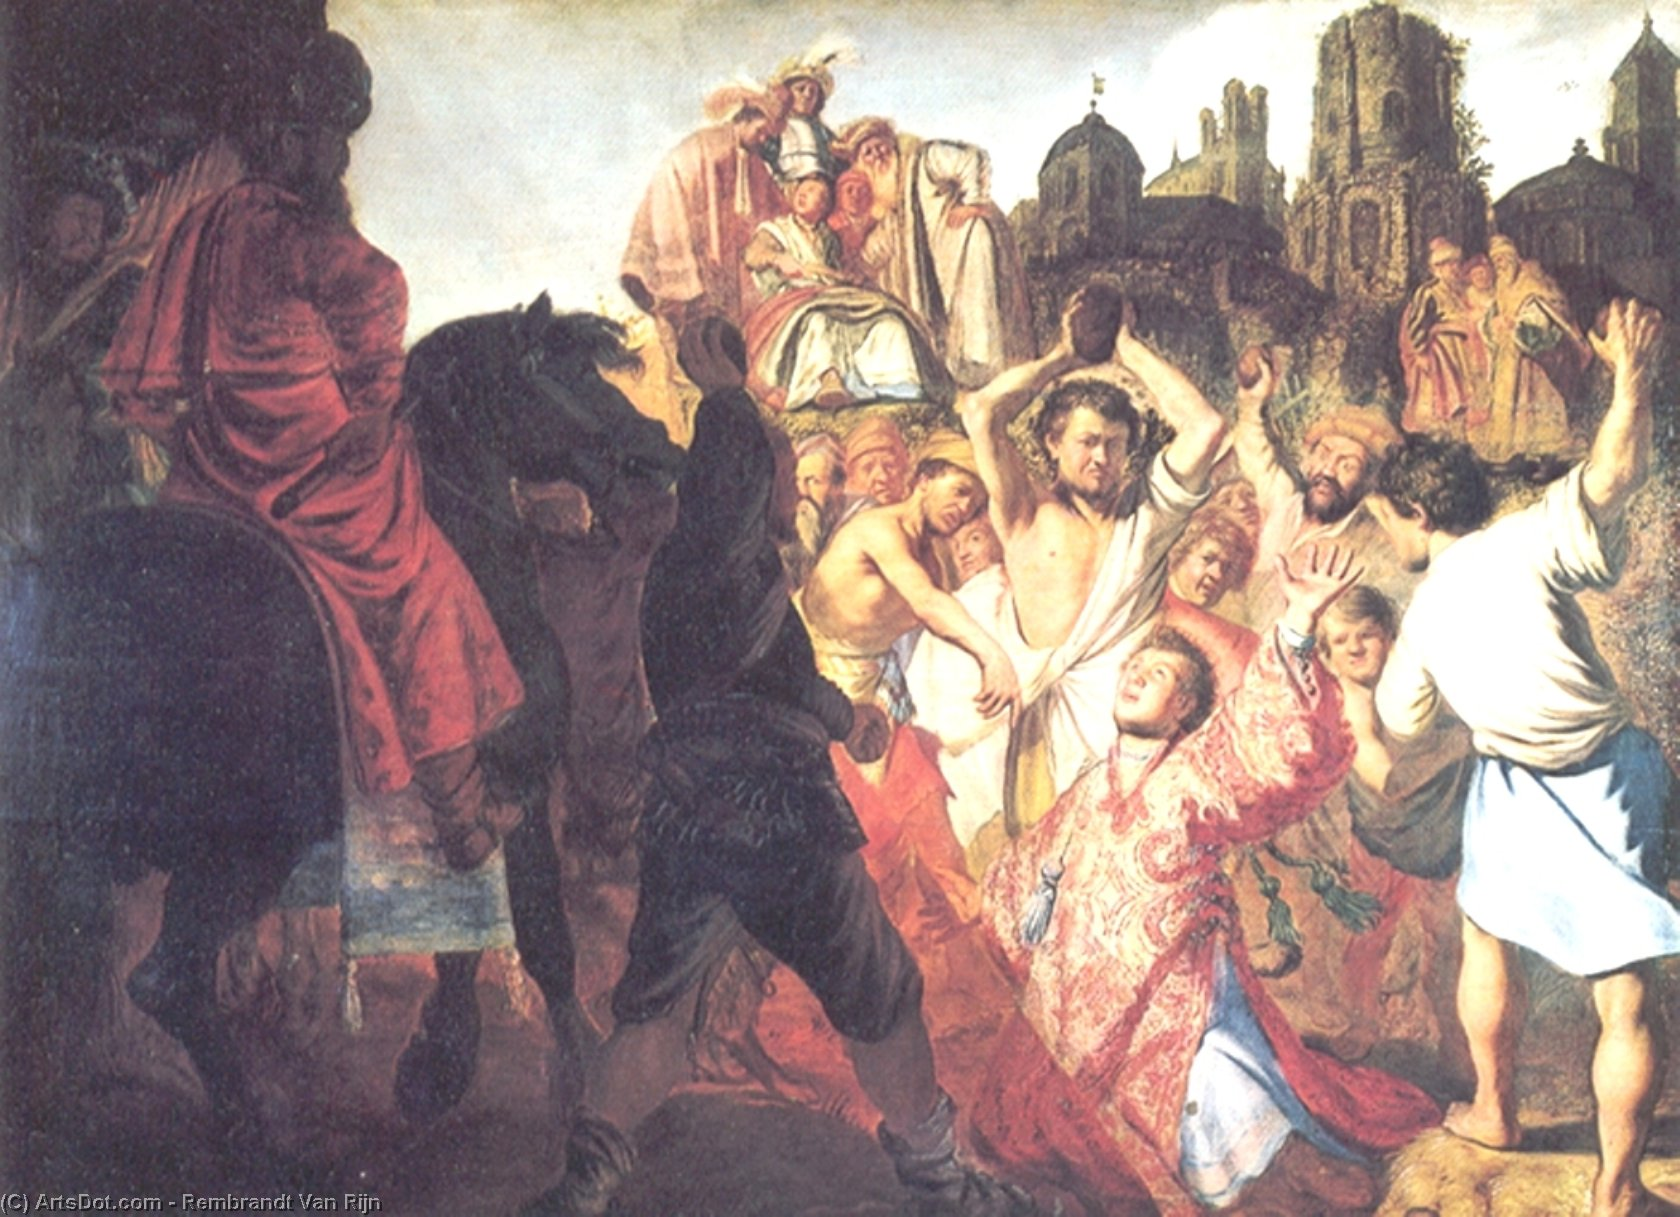 Wikioo.org - The Encyclopedia of Fine Arts - Painting, Artwork by Rembrandt Van Rijn - The Stoning of St. Stephen